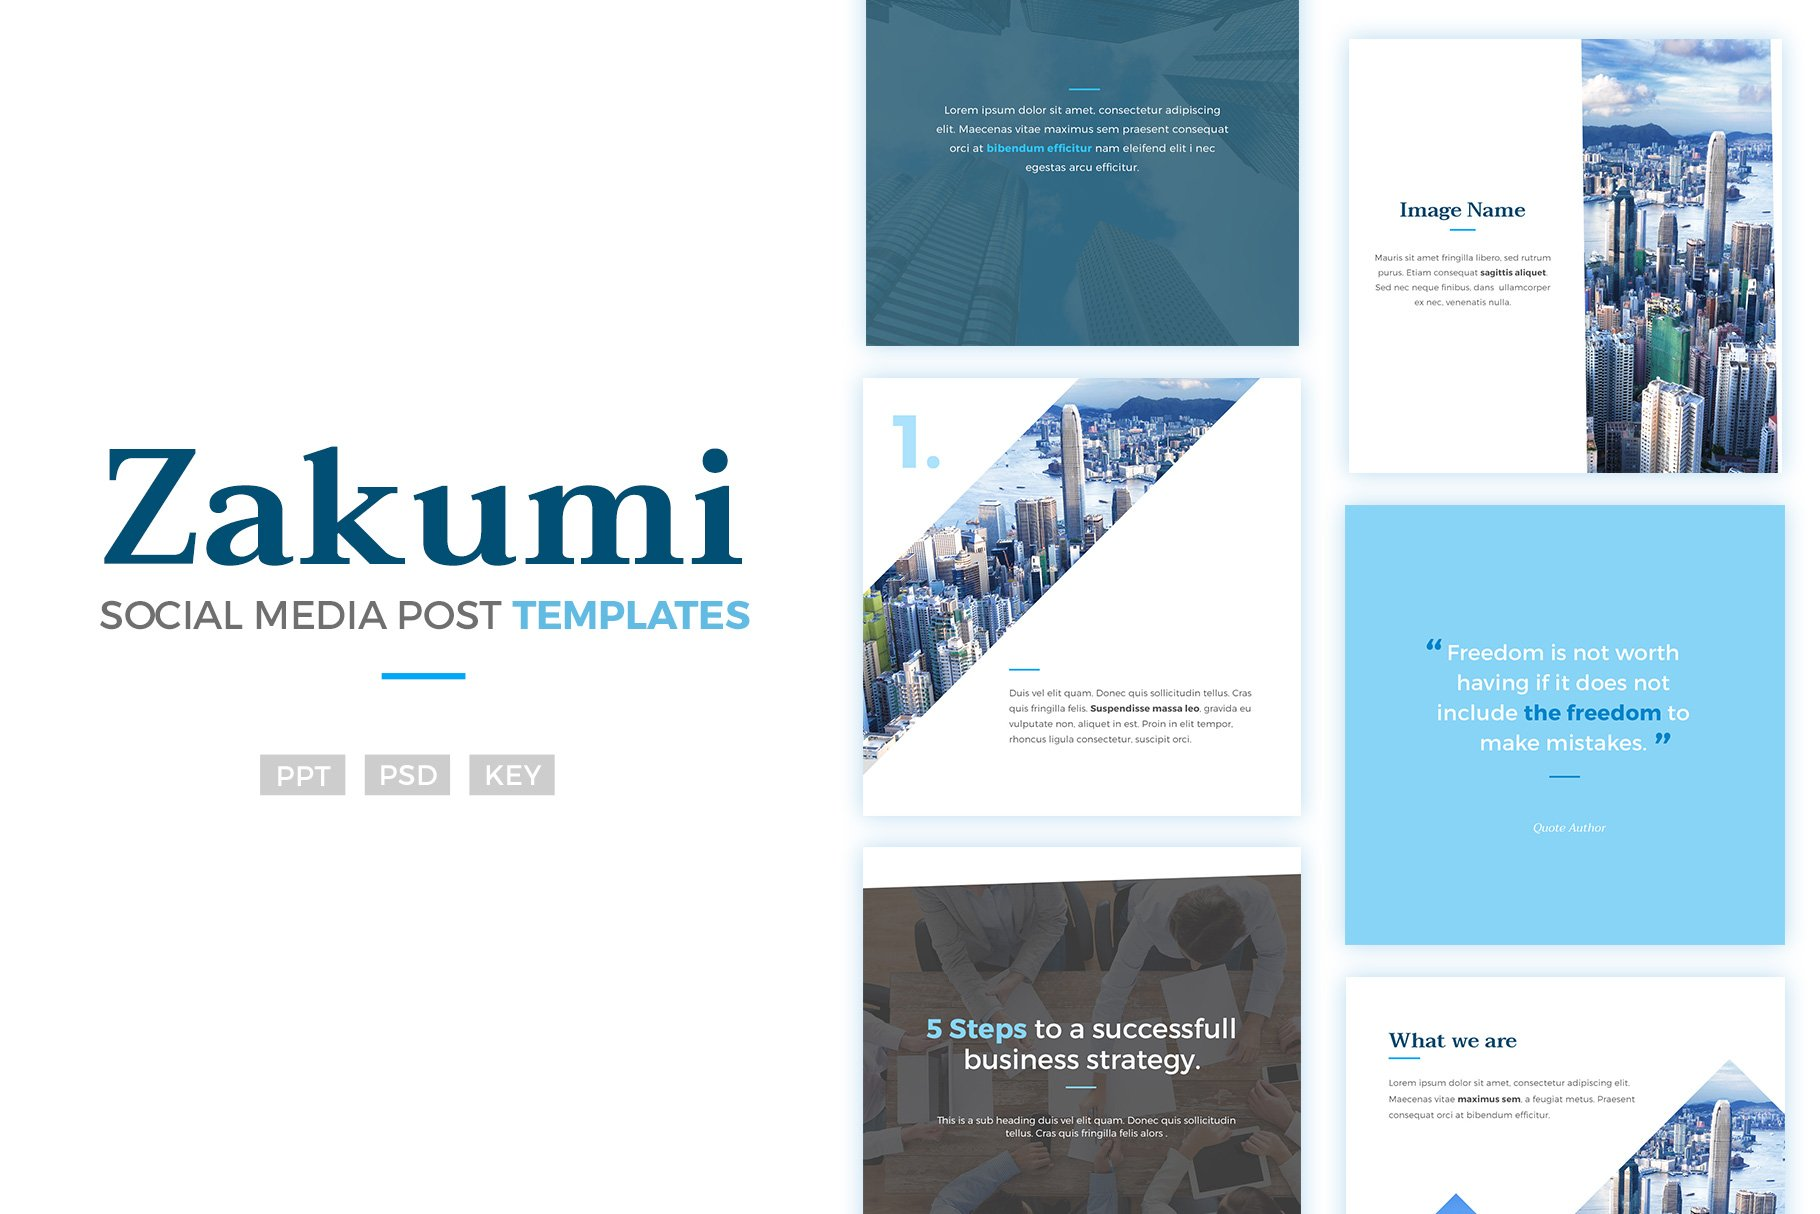 Social Media Post Templates Zakumi Instagram Templates - Social media post template